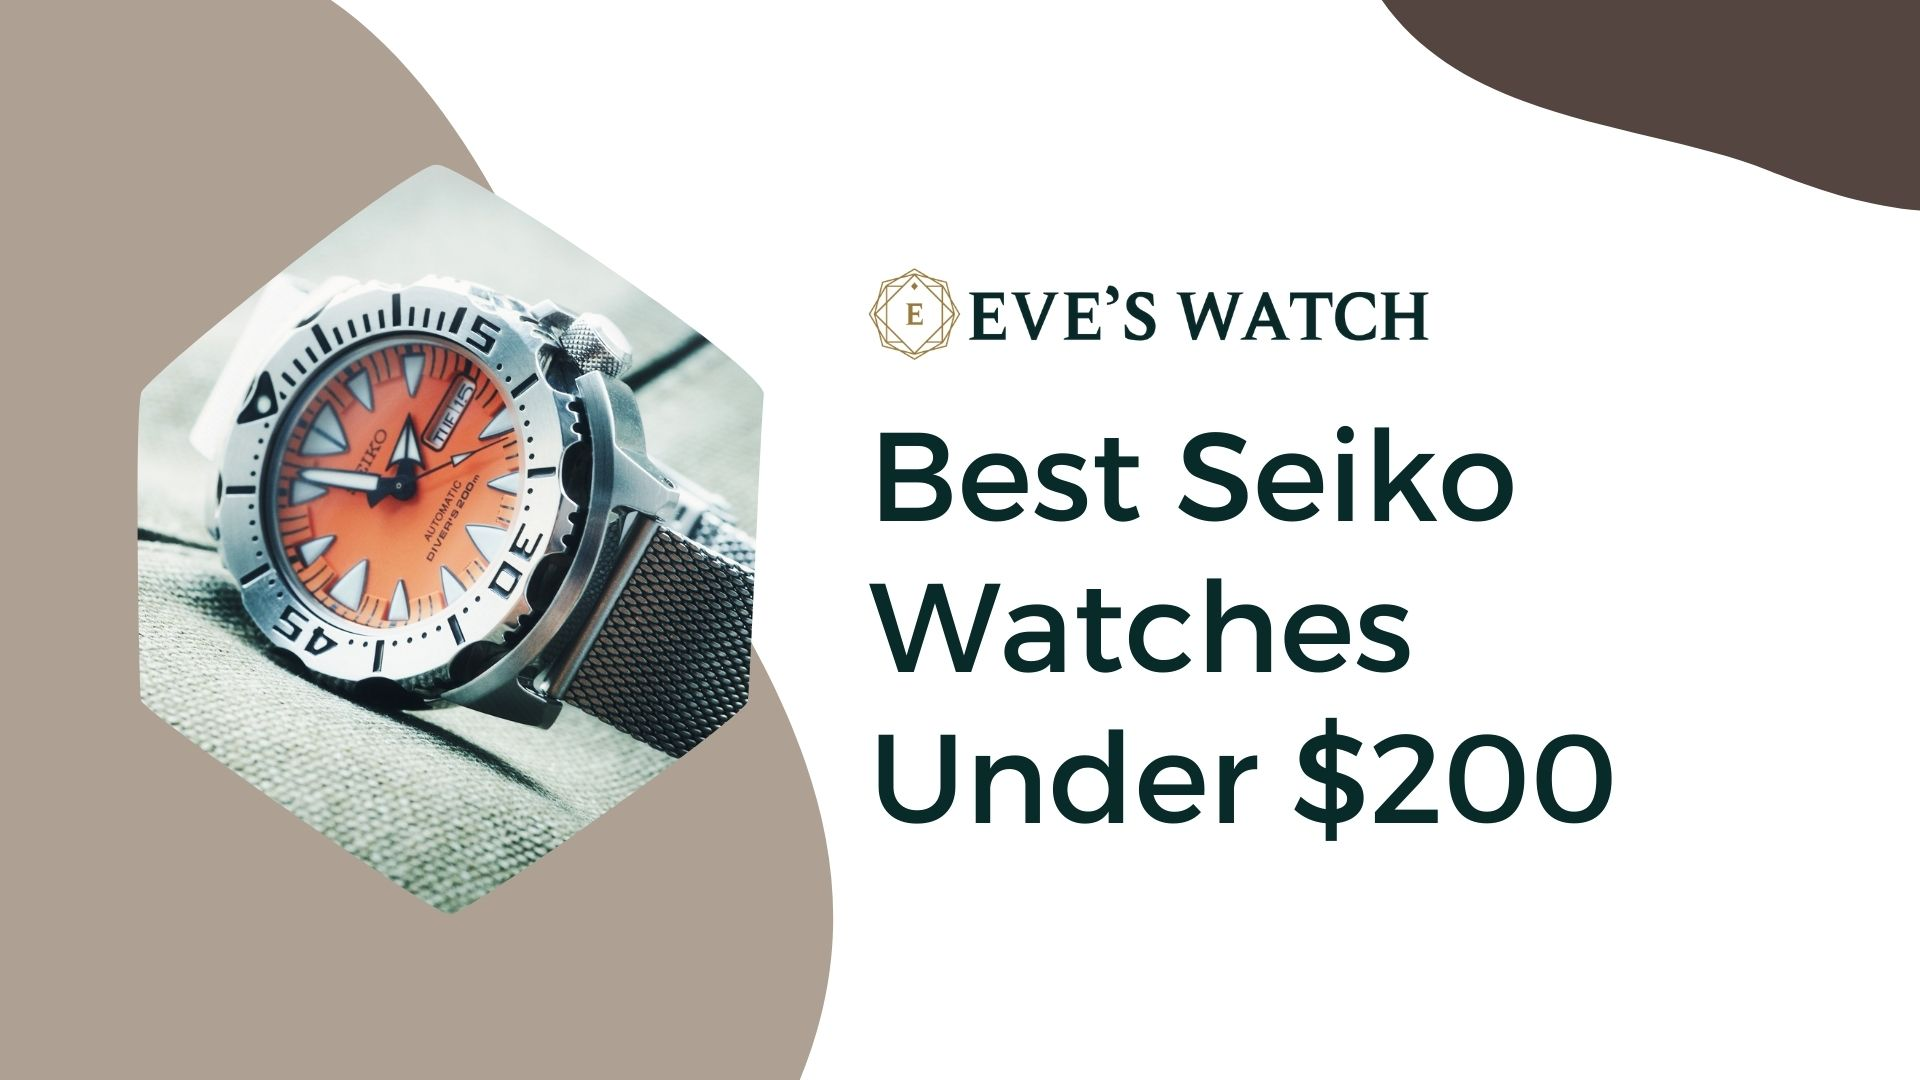 Best Seiko Watches Under $200